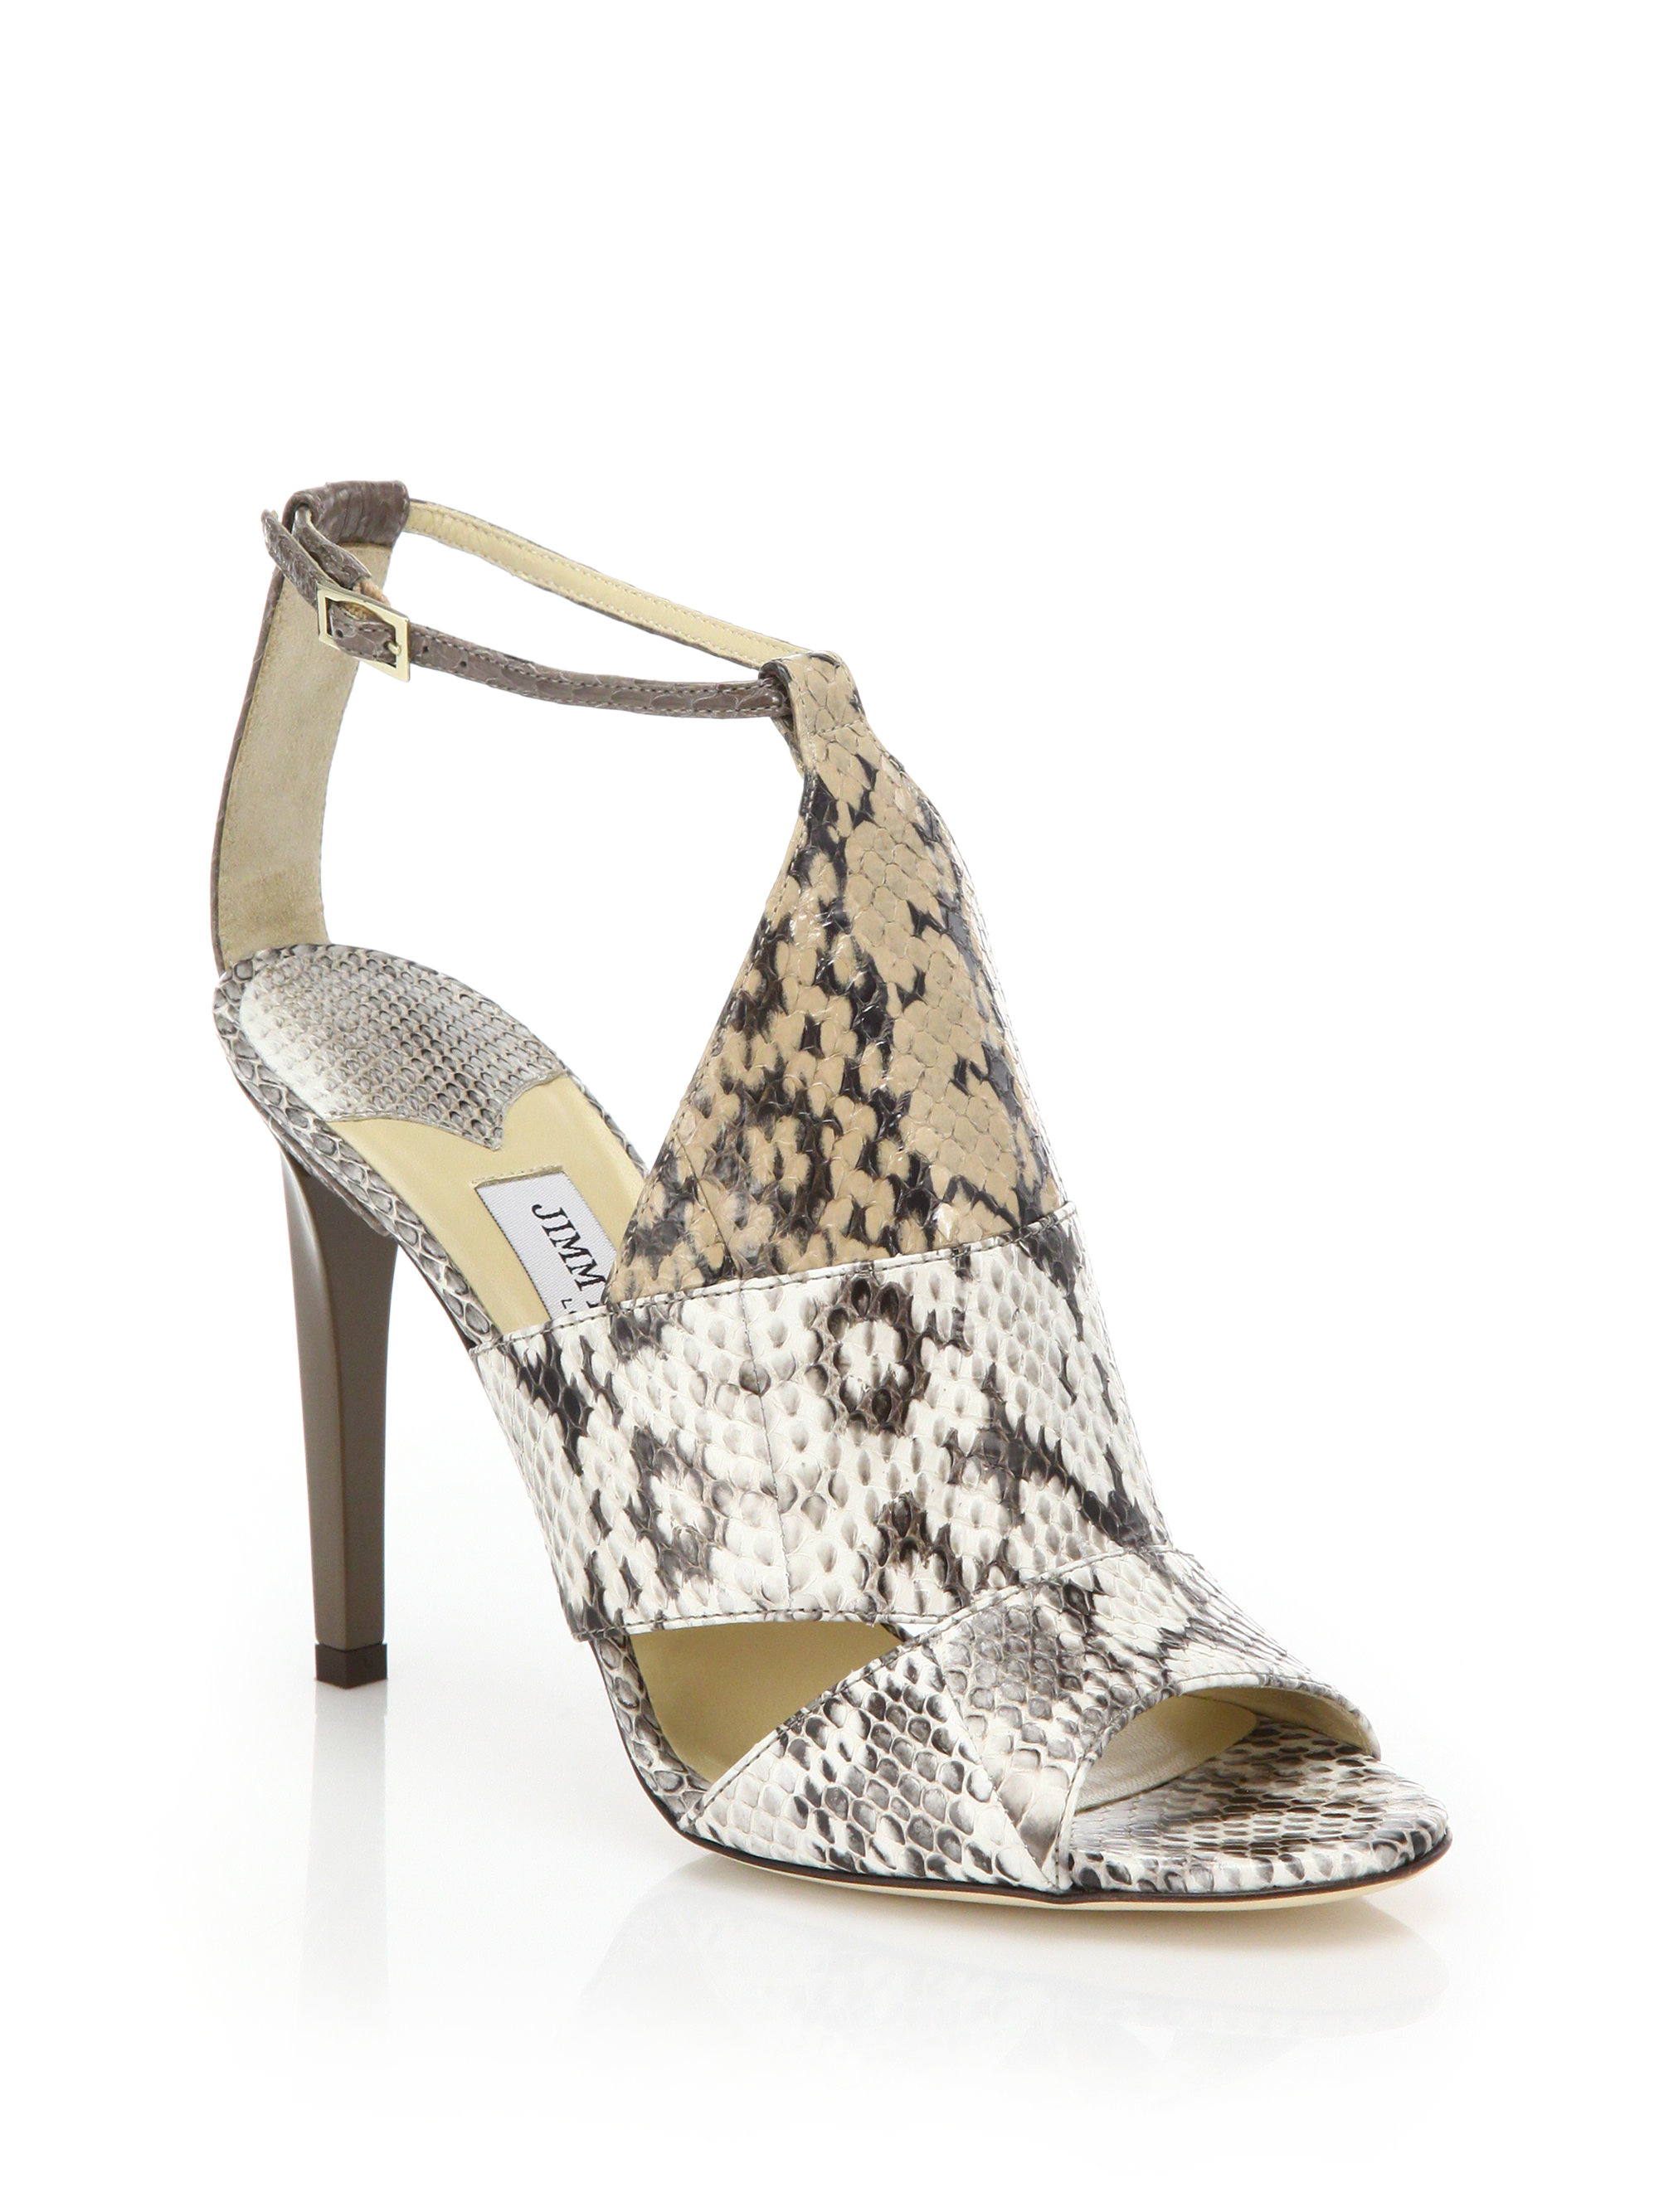 2ccc1b5039ee Lyst - Jimmy Choo Timbus Colorblock Snakeskin Sandals in Natural